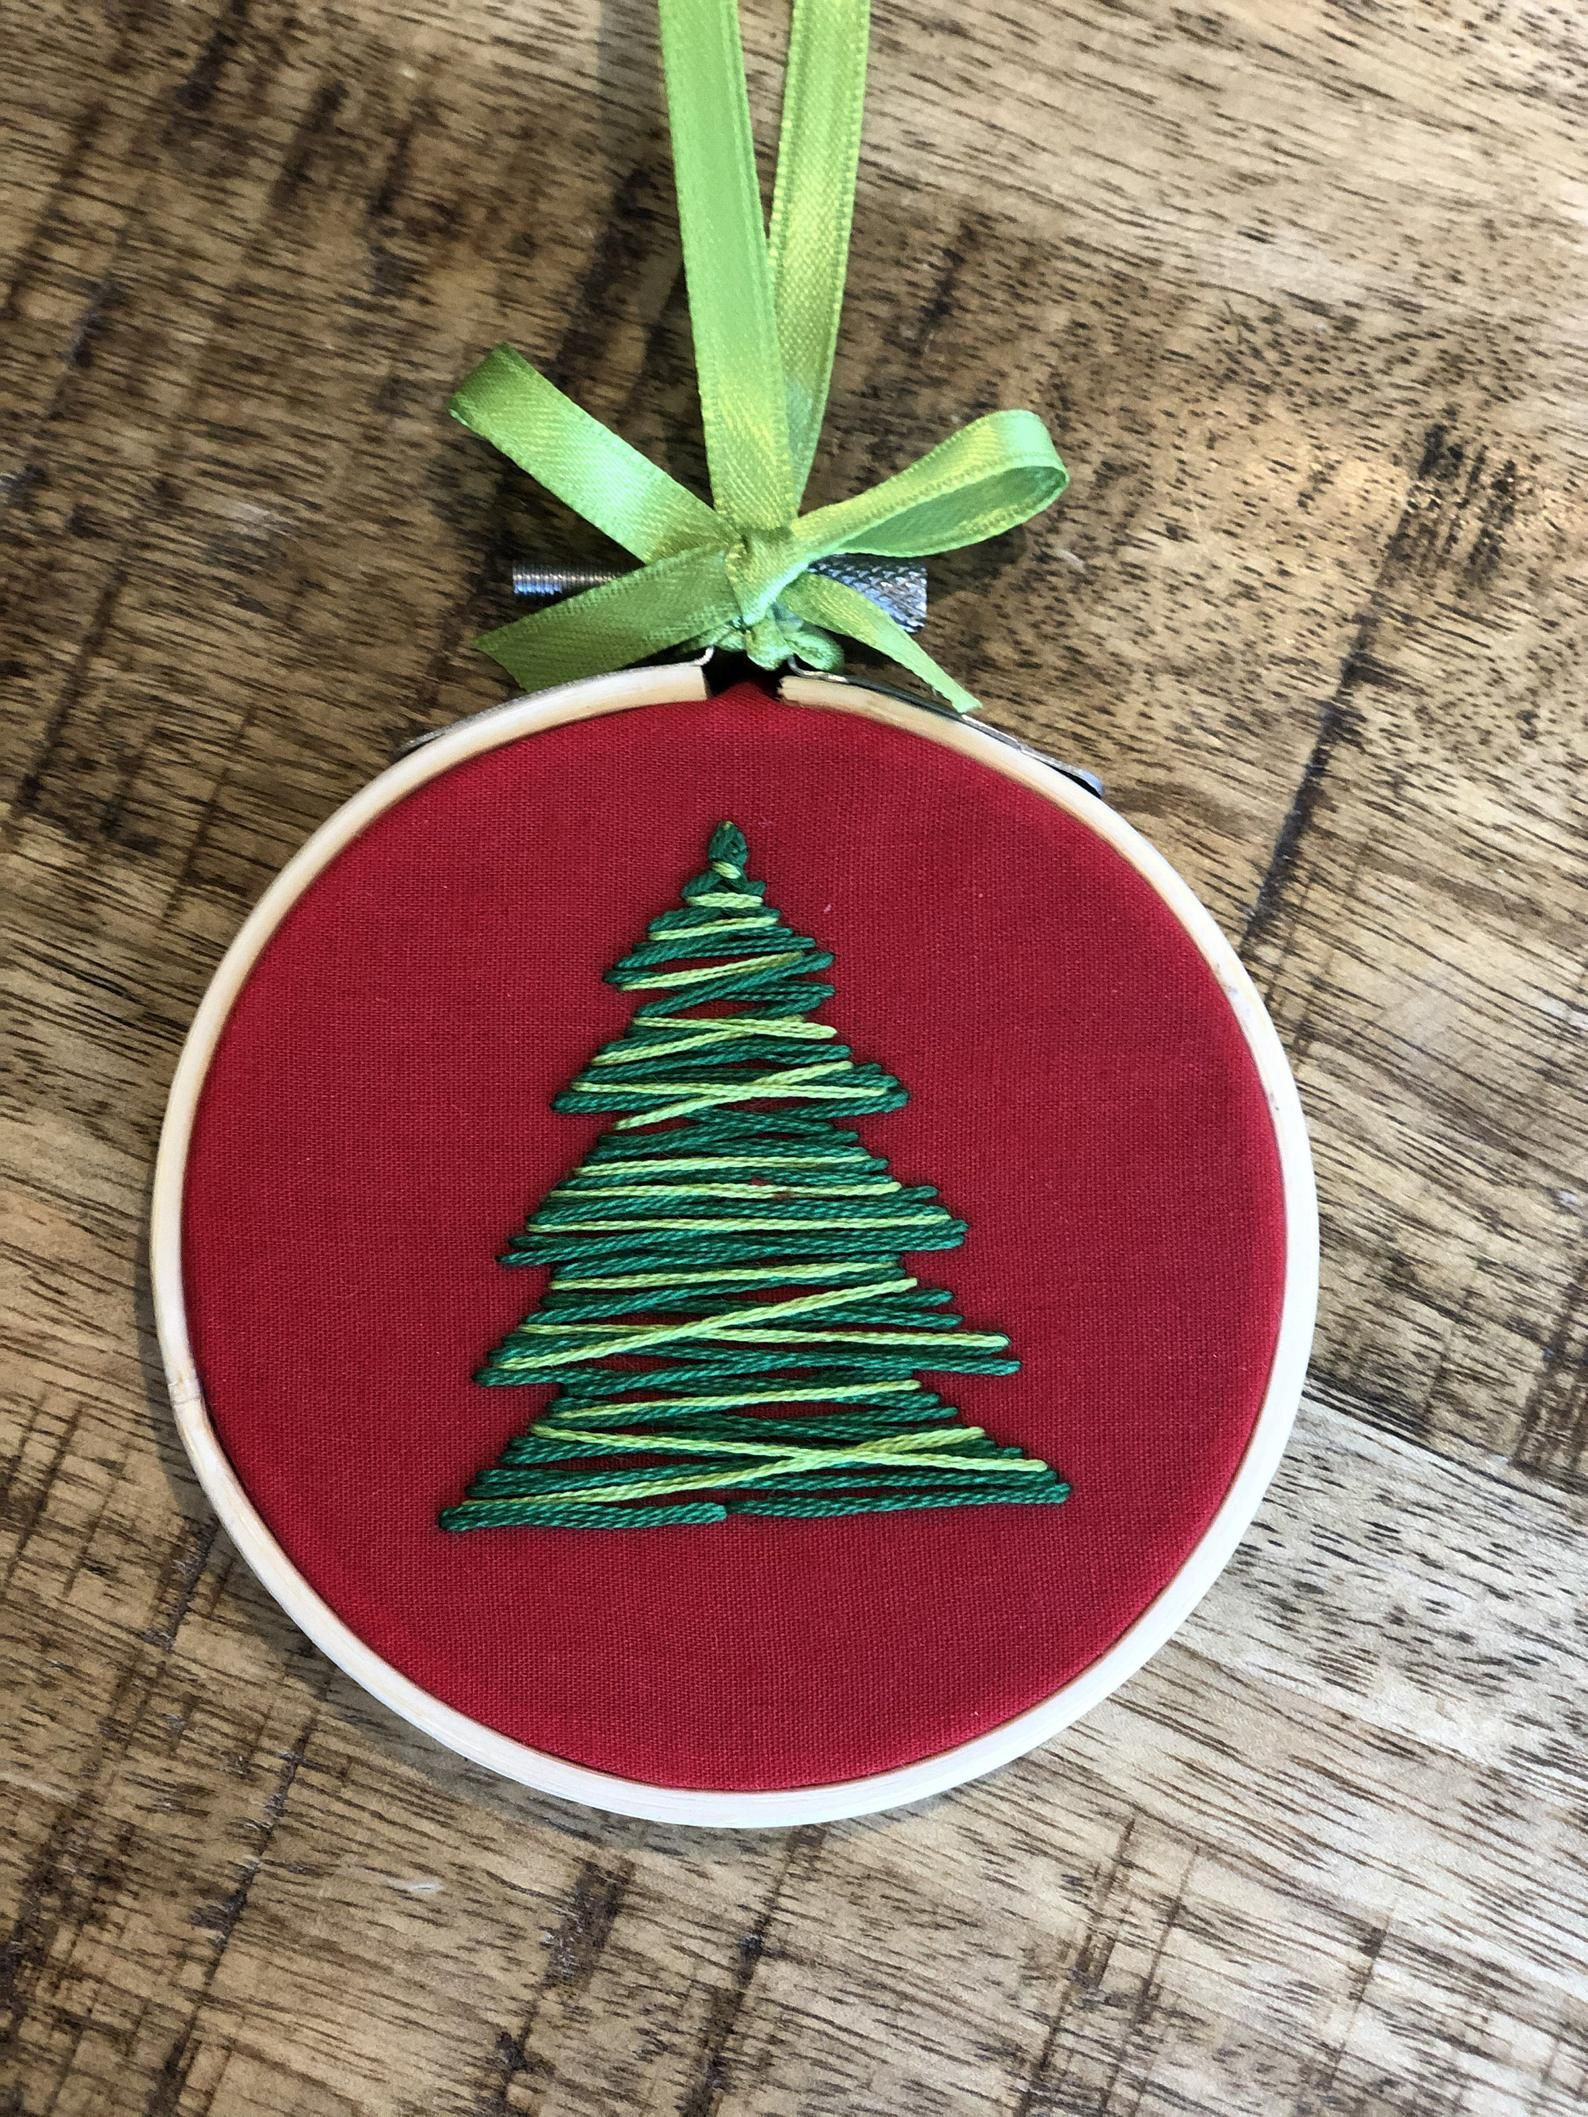 Hand Embroidered Christmas Tree Ornament Etsy Embroidered Christmas Ornaments Christmas Embroidery Designs Christmas Embroidery Patterns